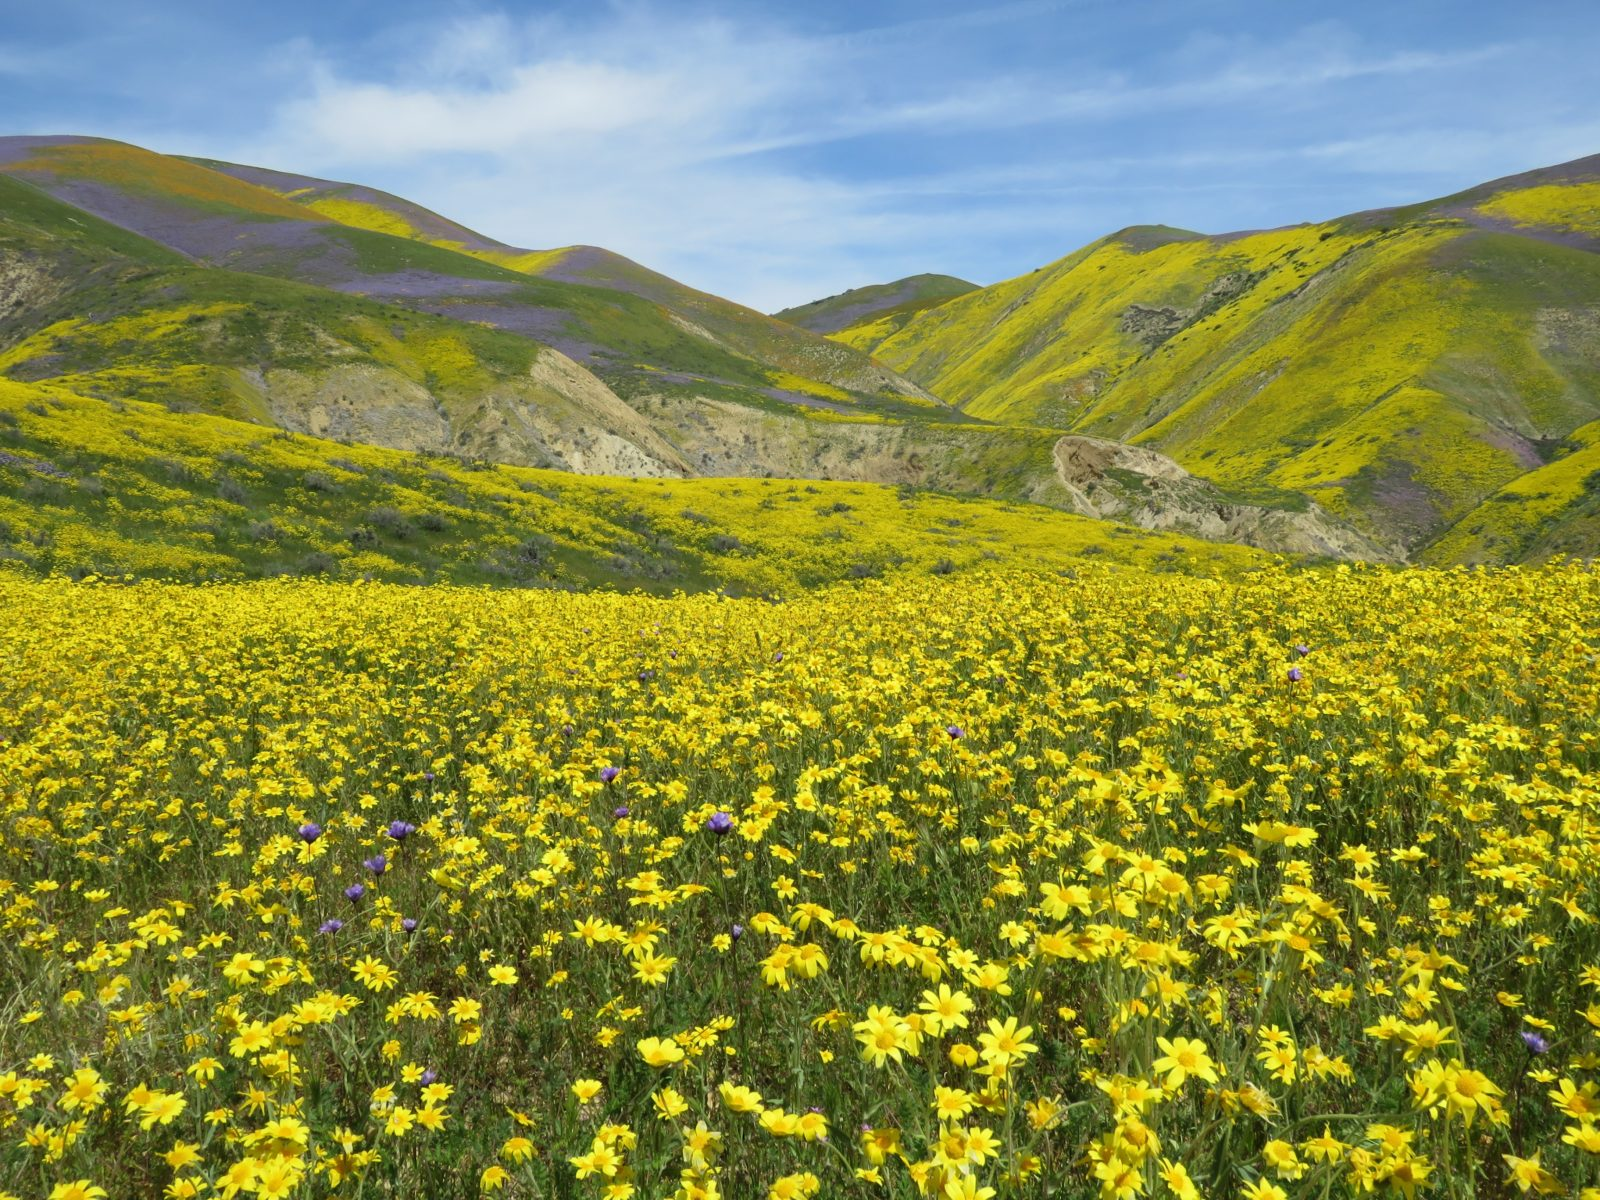 Yellow Fields and Hills